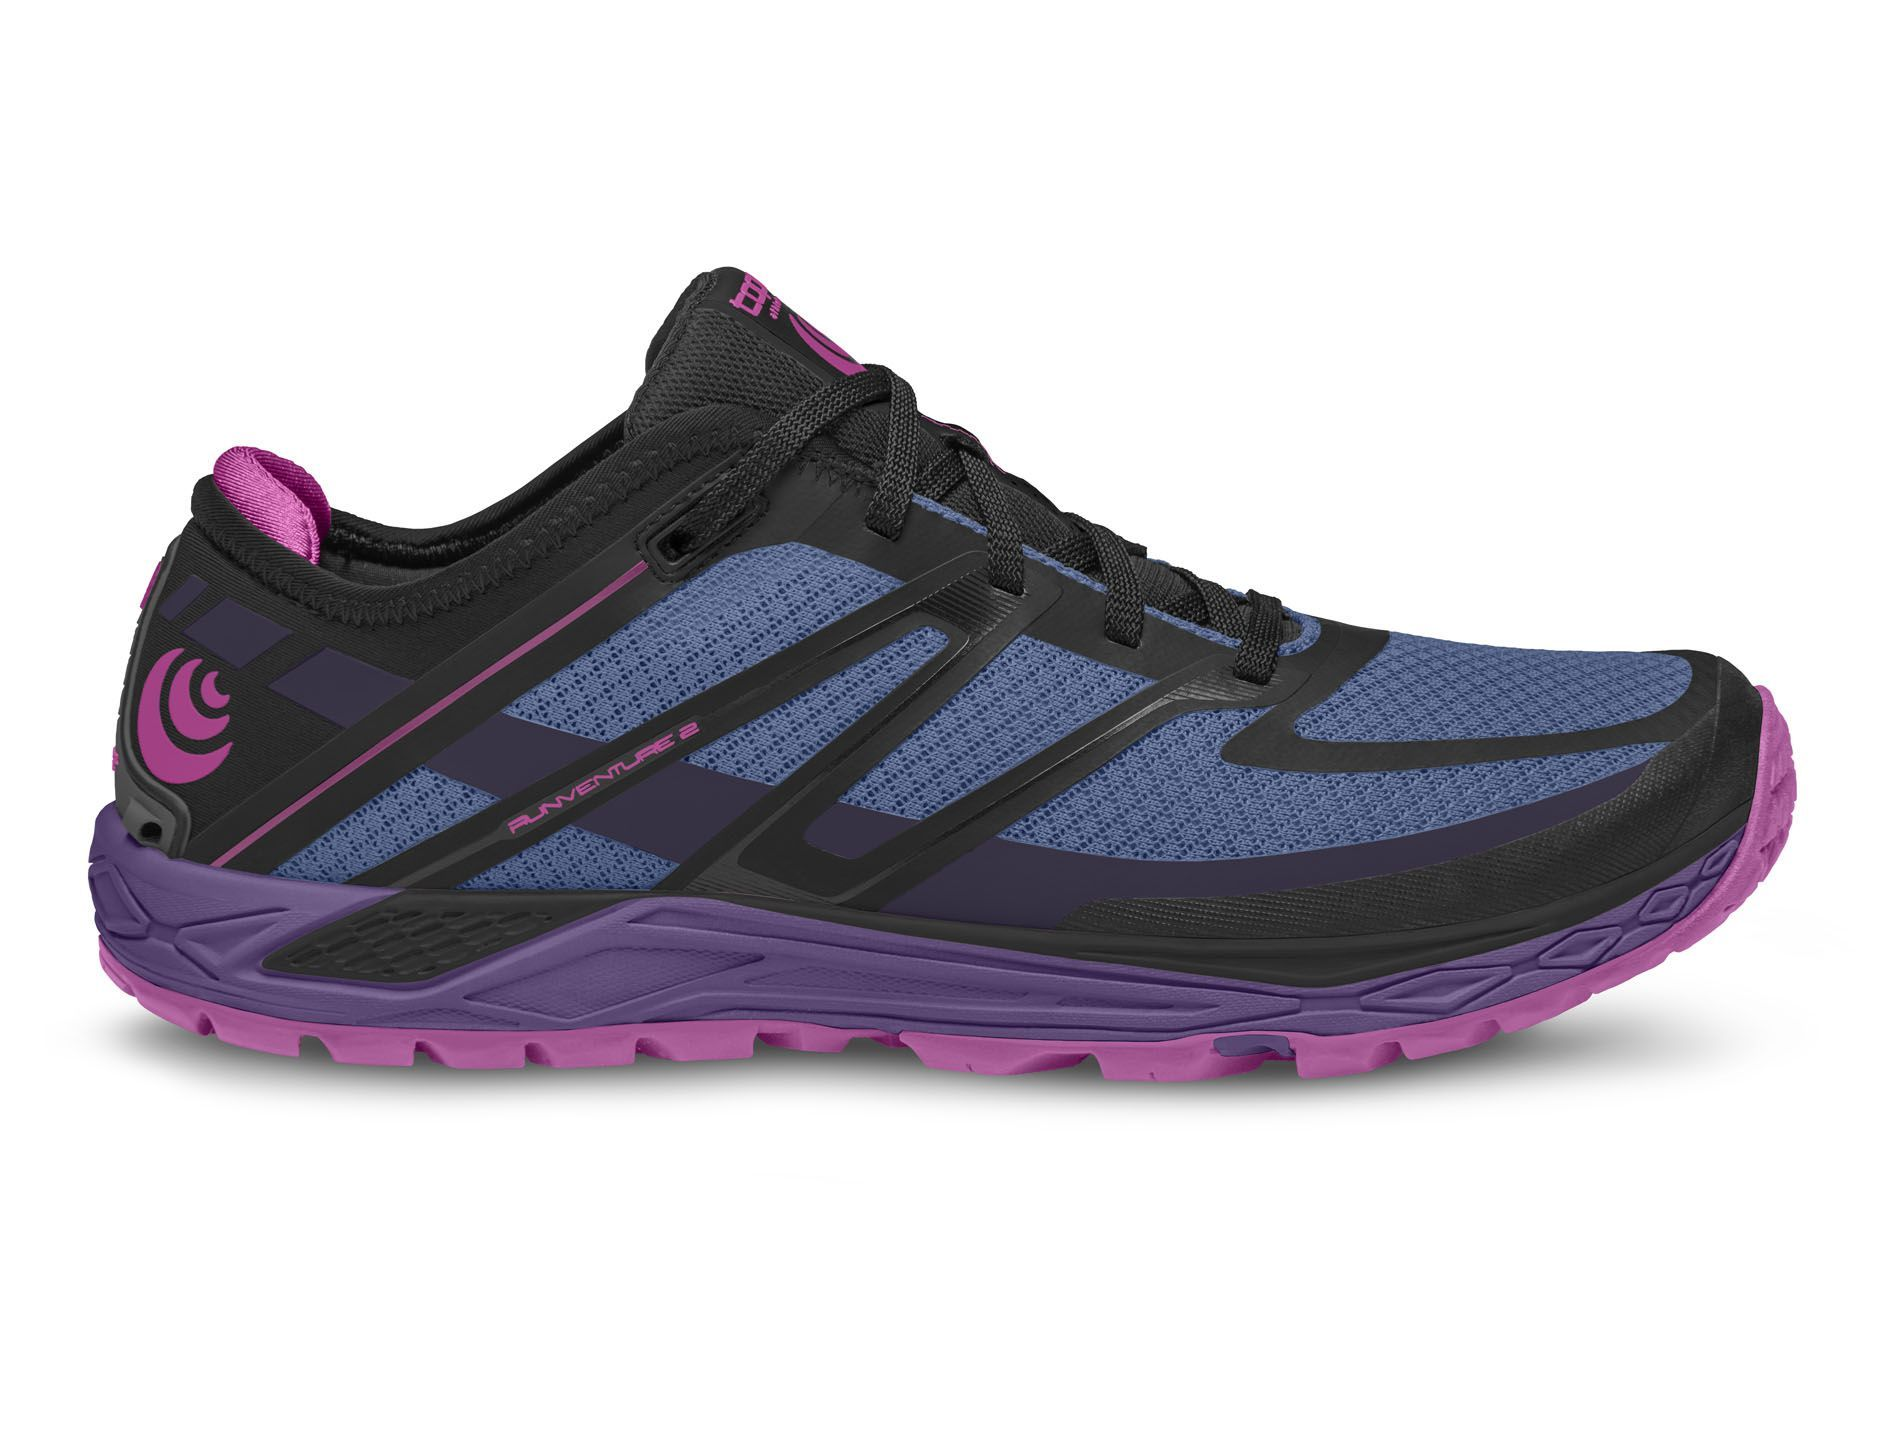 505f66e9a Lightweight Running Shoes